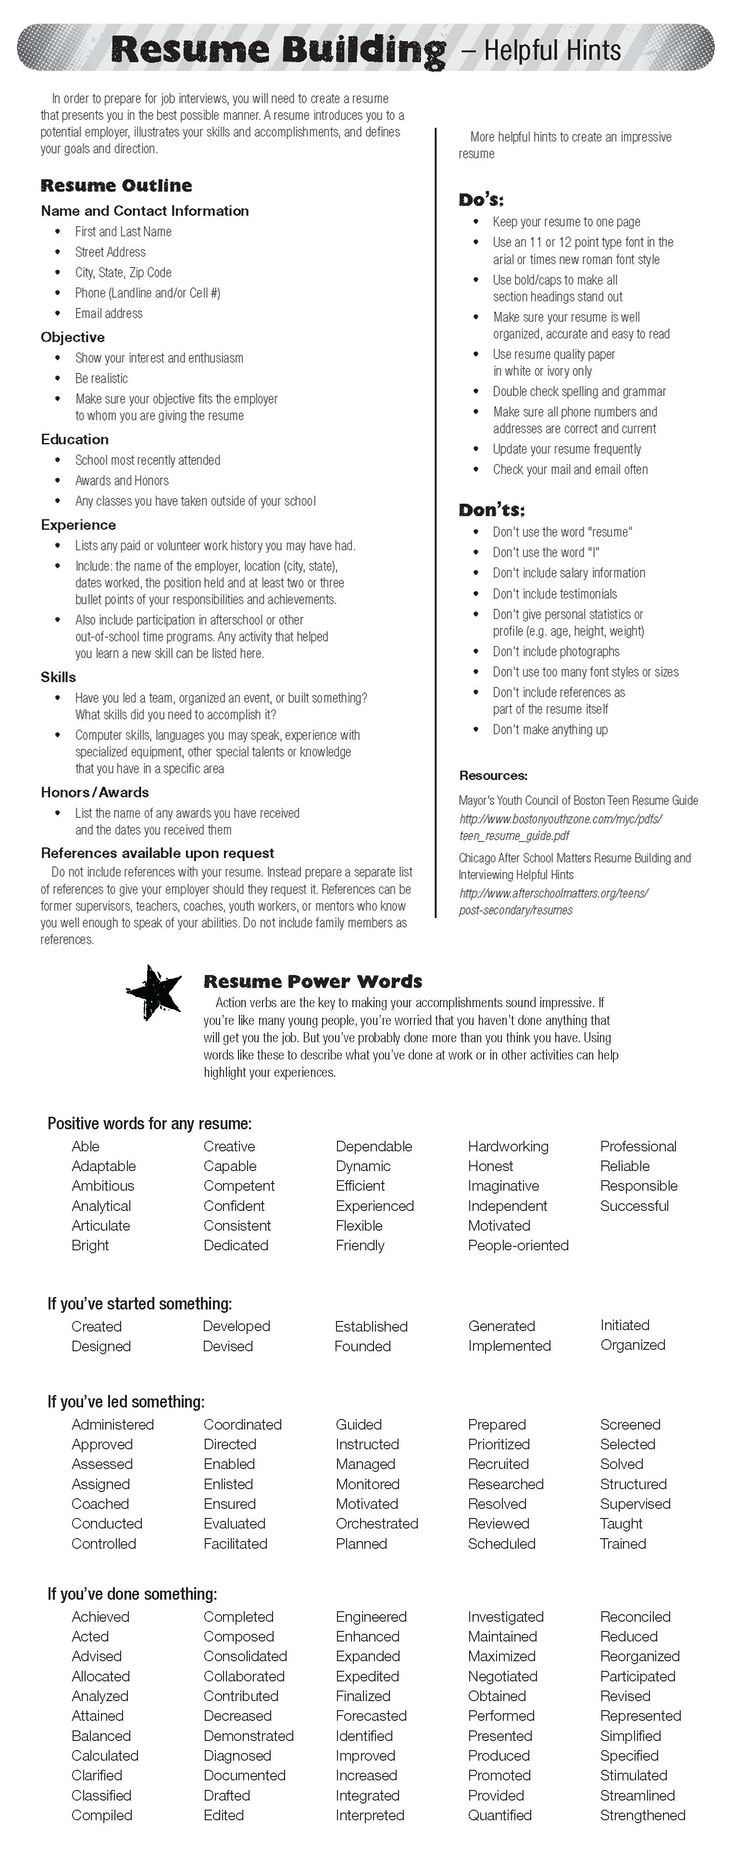 Picnictoimpeachus  Prepossessing  Ideas About Resume On Pinterest  Cv Format Resume  With Inspiring Check Out Todays Resume Building Tips Resume Resumepowerwords With Delightful Resume Format Sample Also Resume For Job Fair In Addition Resumes For Servers And Welder Resume Examples As Well As Cool Resume Template Additionally Job Fair Resume From Pinterestcom With Picnictoimpeachus  Inspiring  Ideas About Resume On Pinterest  Cv Format Resume  With Delightful Check Out Todays Resume Building Tips Resume Resumepowerwords And Prepossessing Resume Format Sample Also Resume For Job Fair In Addition Resumes For Servers From Pinterestcom